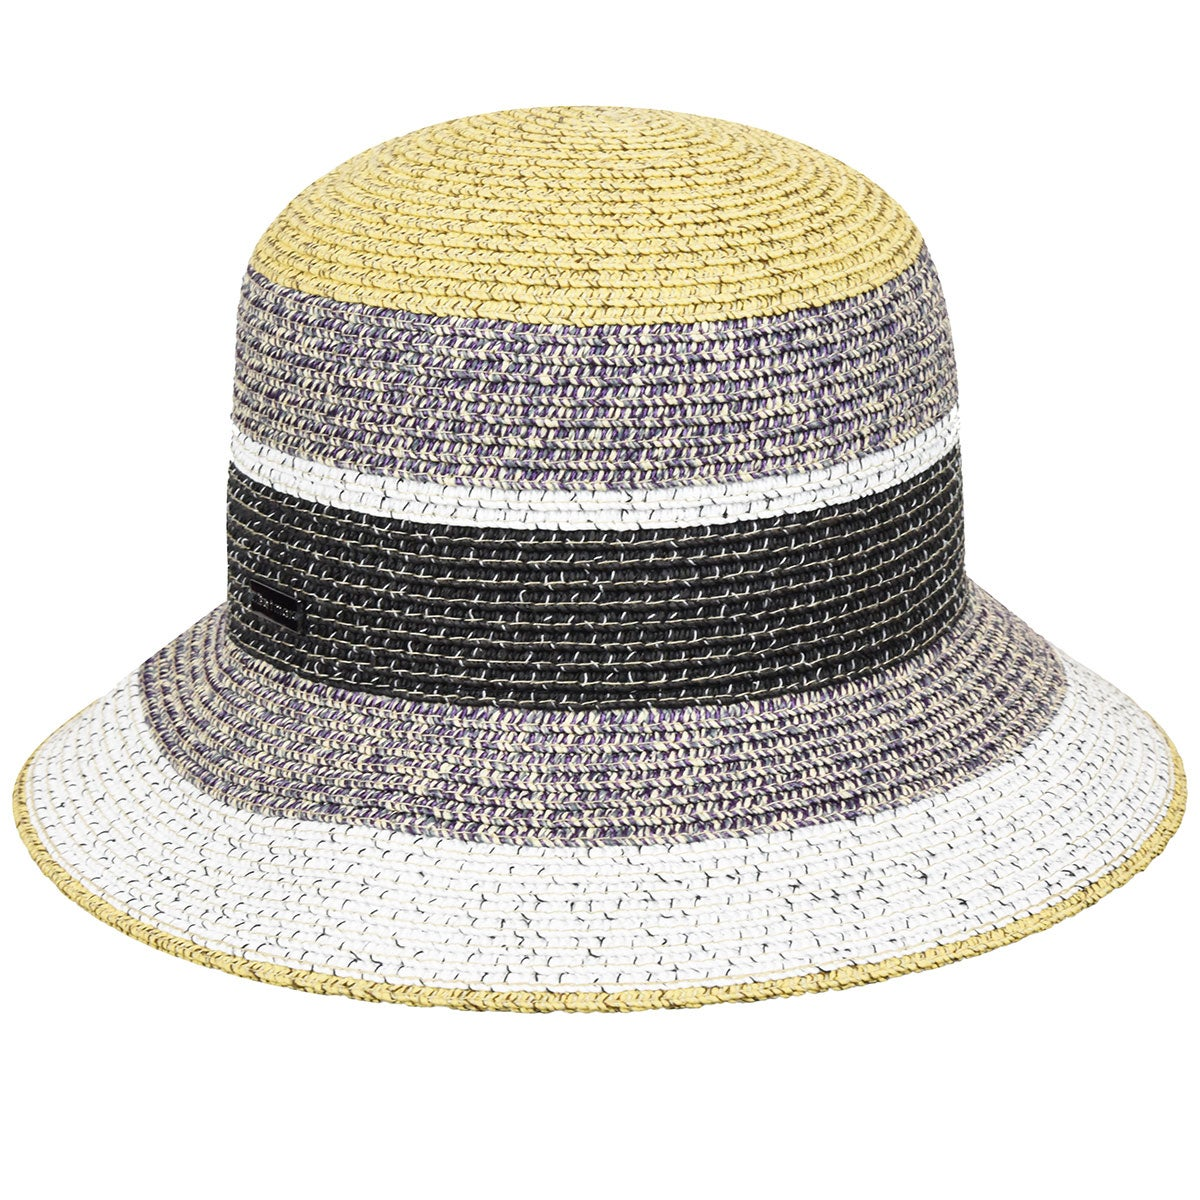 Betmar Catherine Braided Cloche in Mulberry Multi